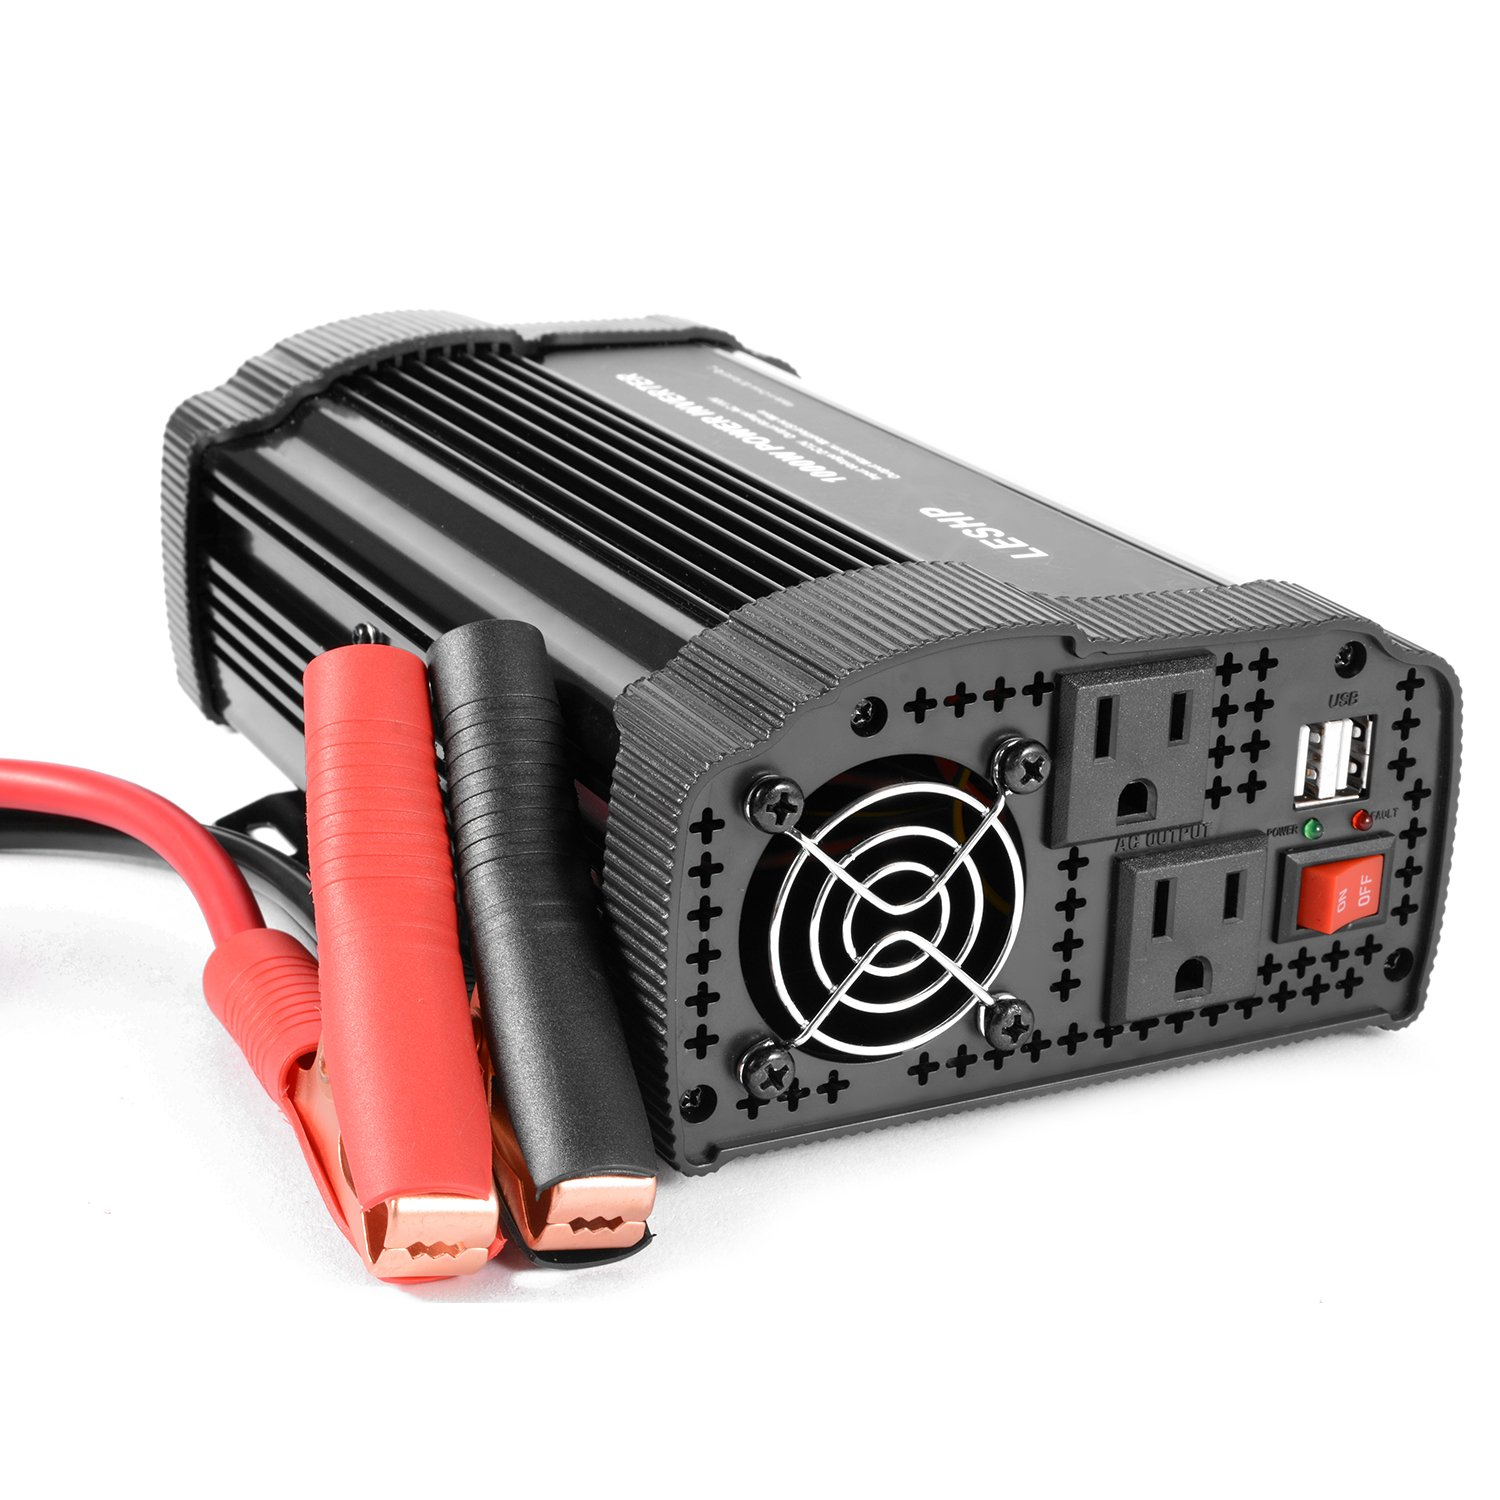 LESHP Power Inverter Converter, 1000W 12V DC To 110V AC Modified Sine Wave Power Inverter Converter